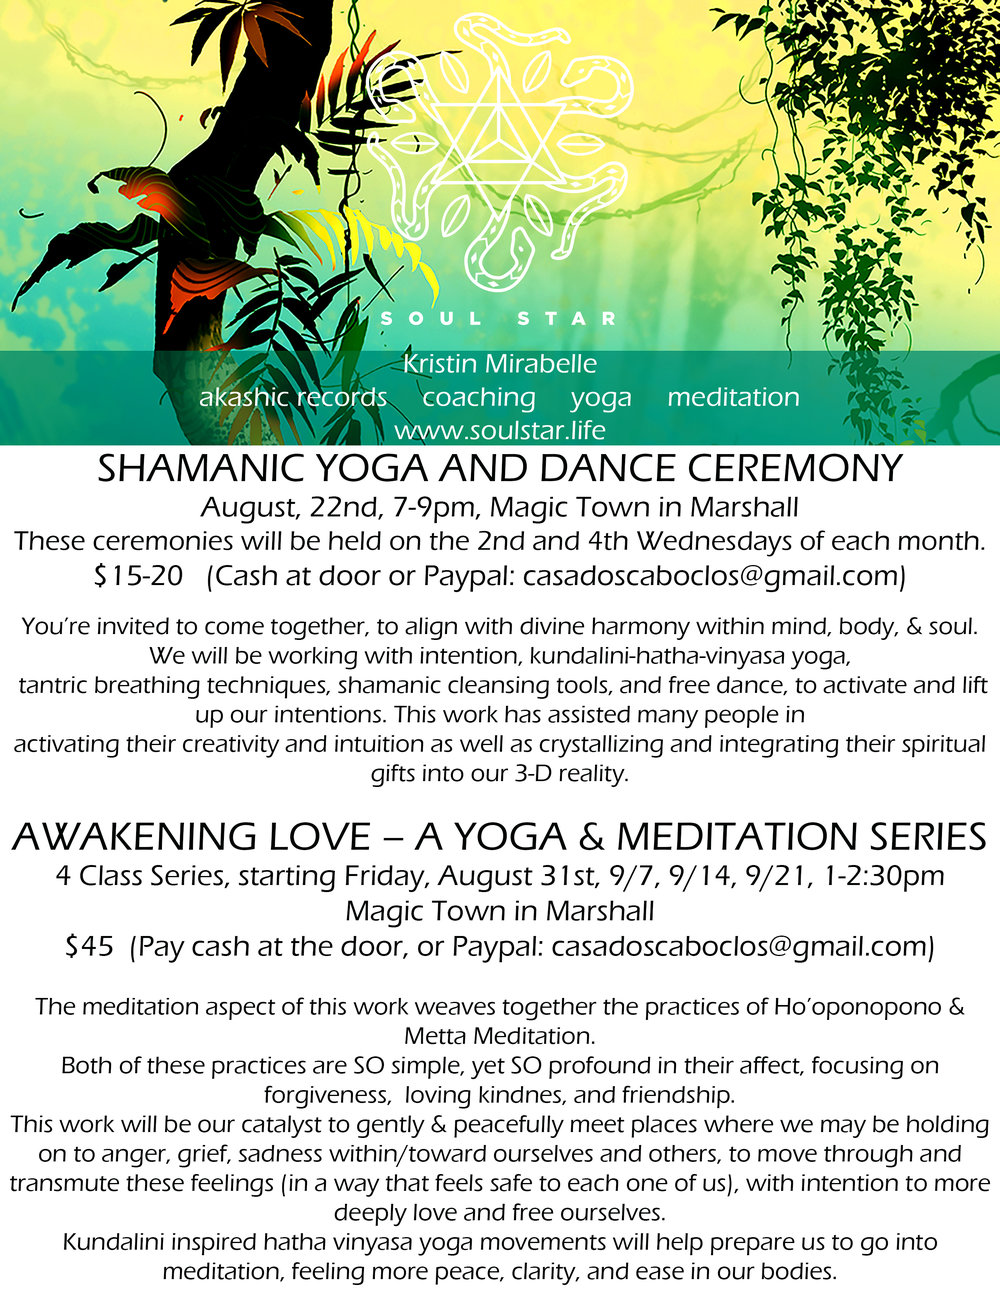 SHAMANIC YOGA AND AWAKENING LOVE FLYER.jpg